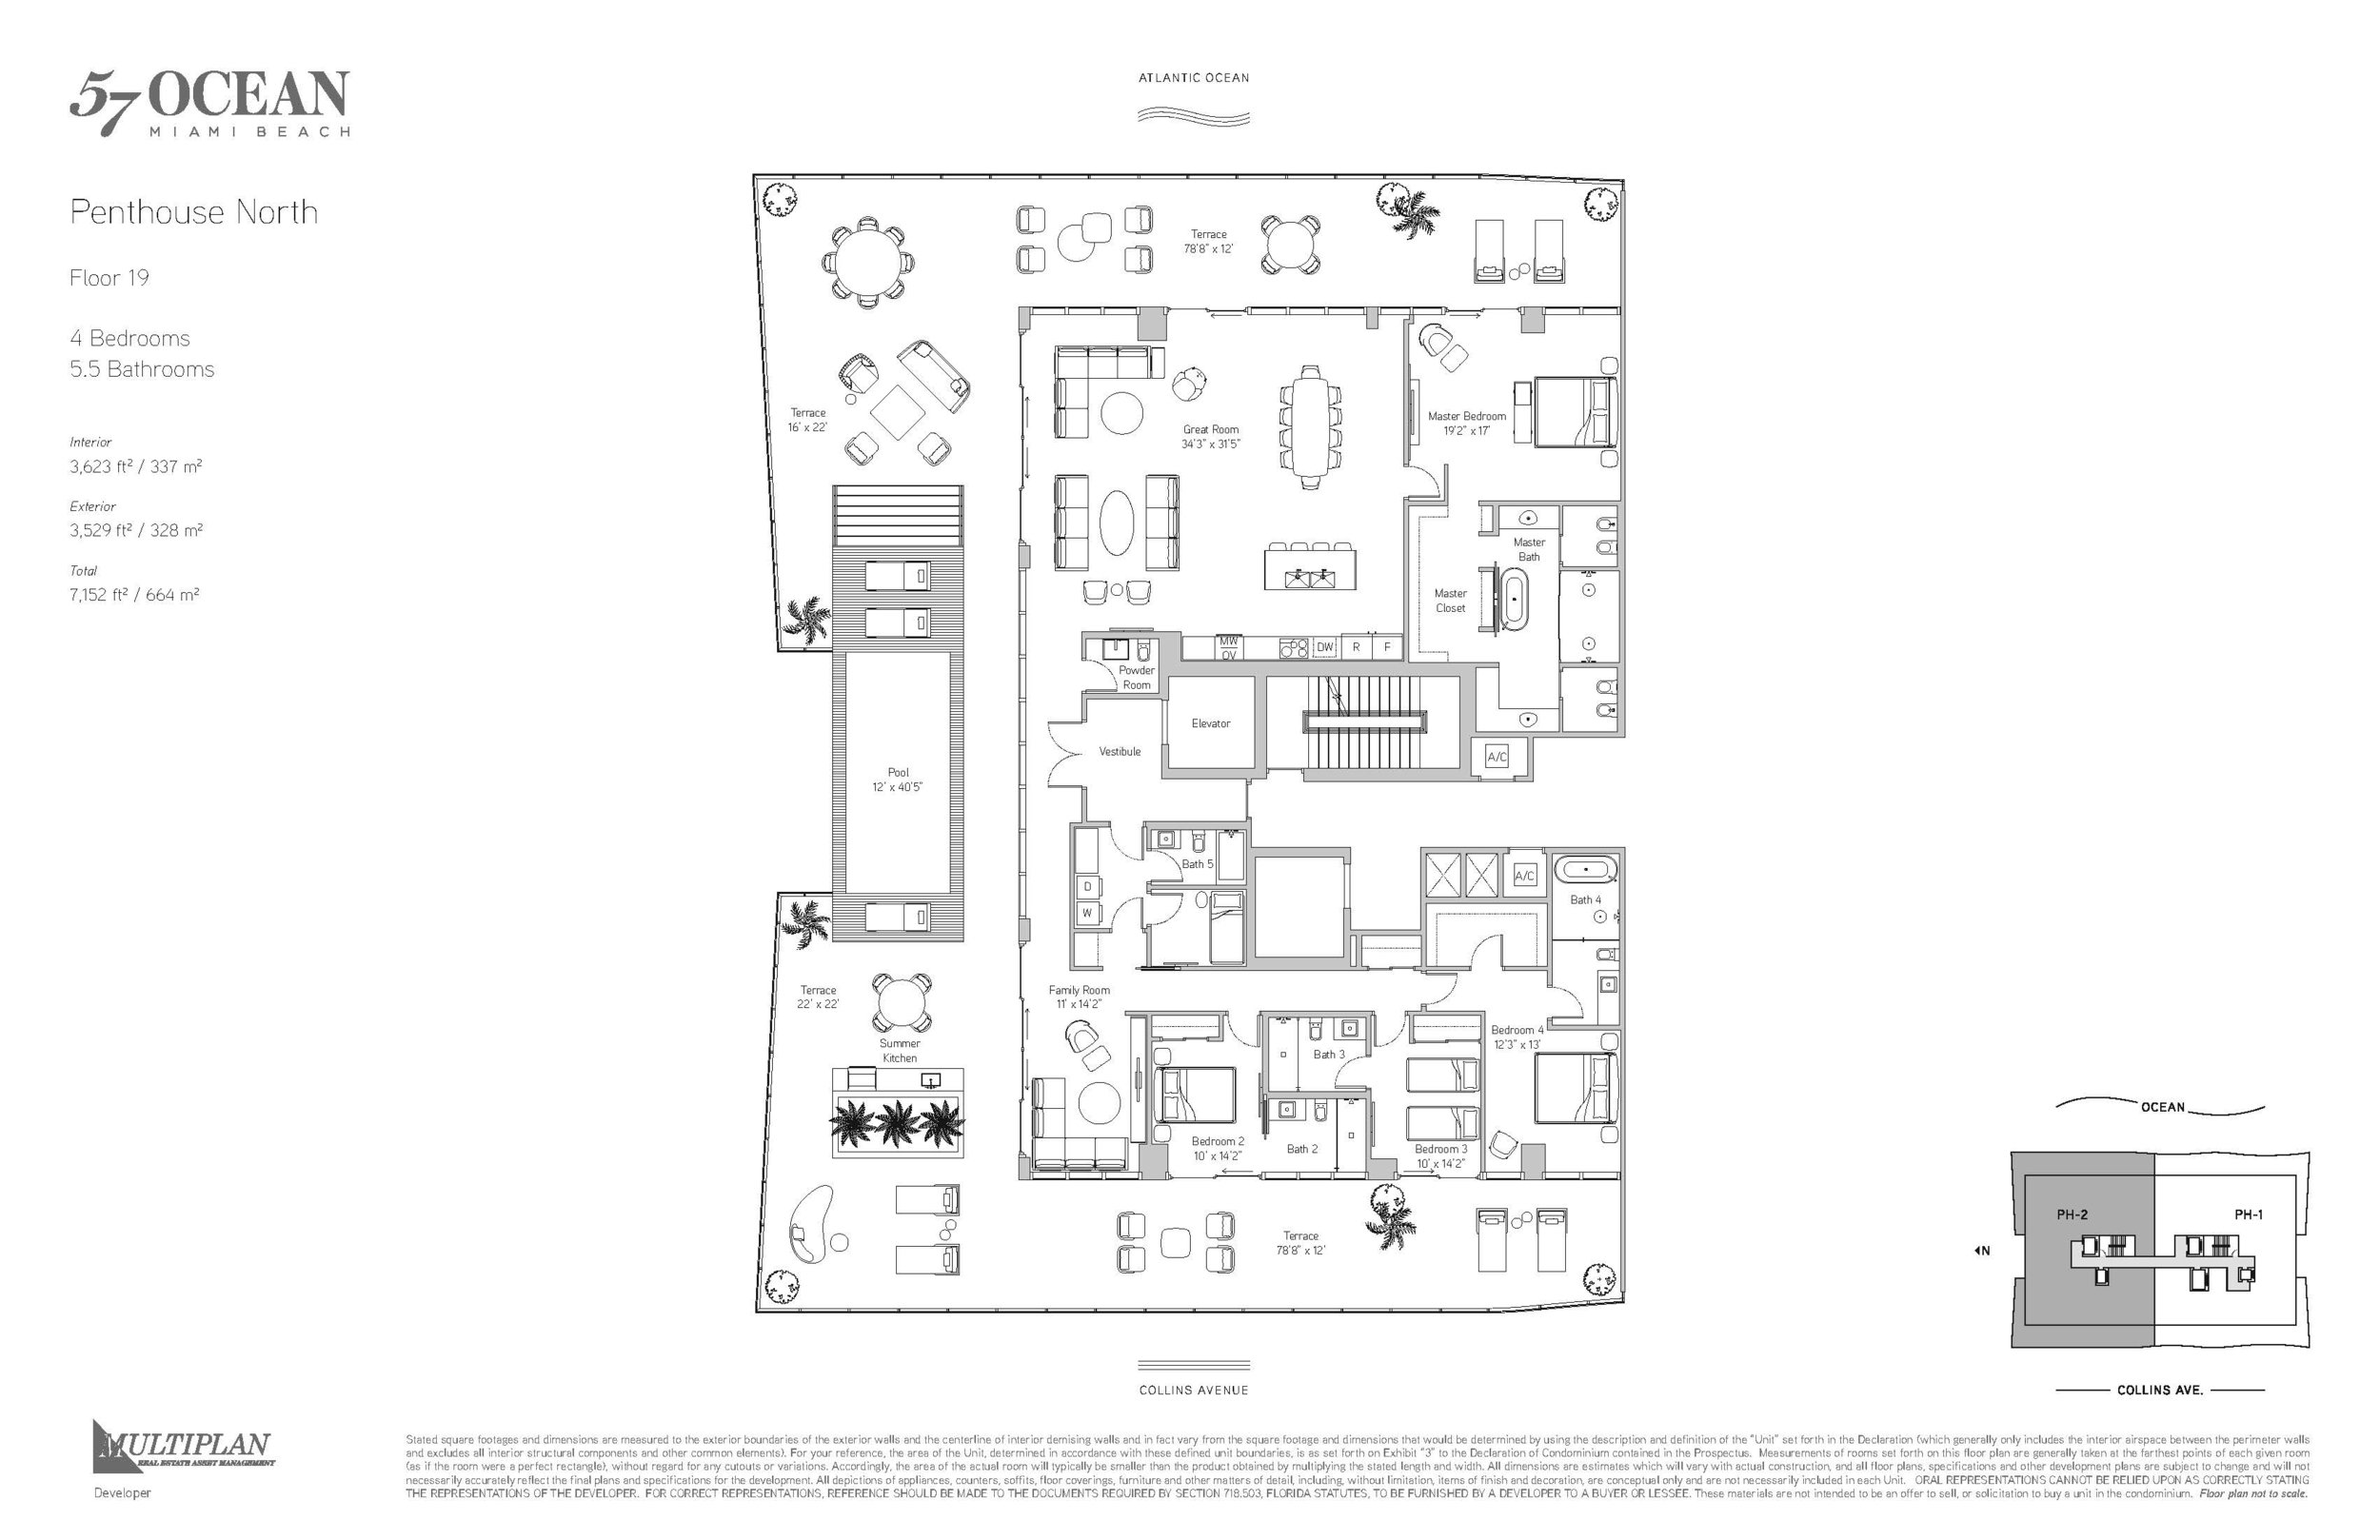 57 Ocean Floor Plans - 4 Bedroom Penthouse North